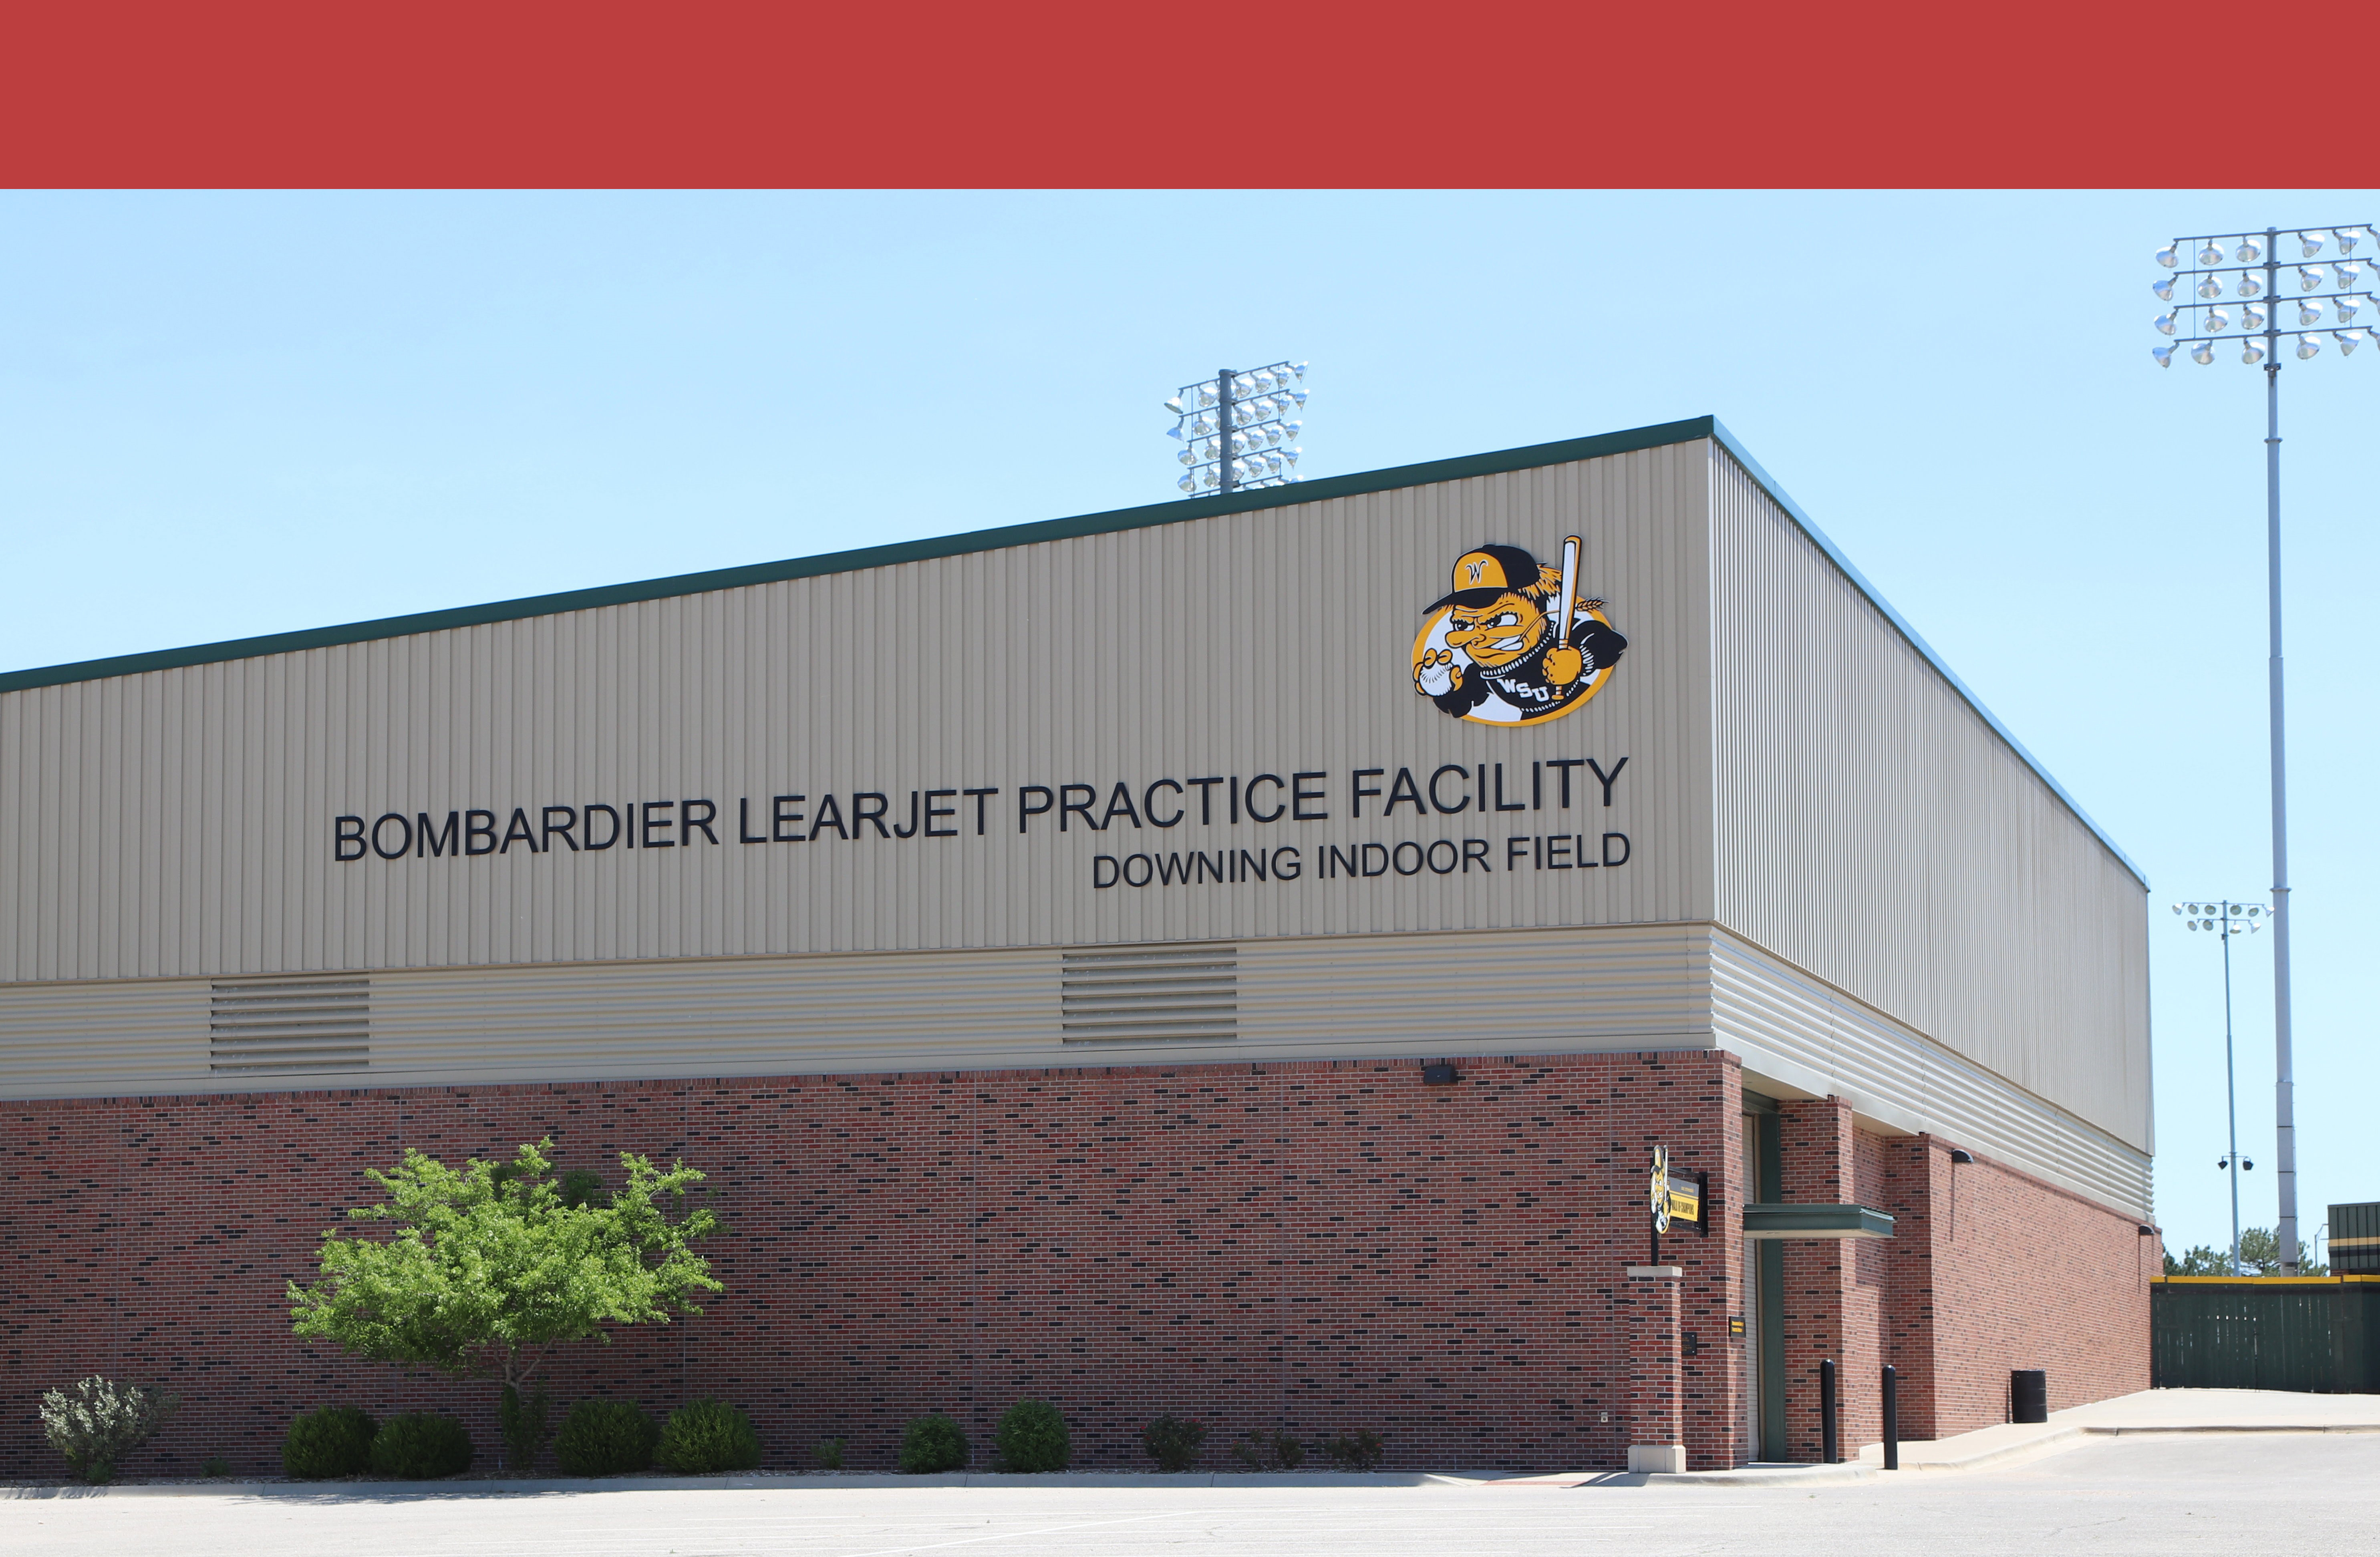 image of the side of the bombardier learjet practice facility. shows the baseball wu shock on the side.